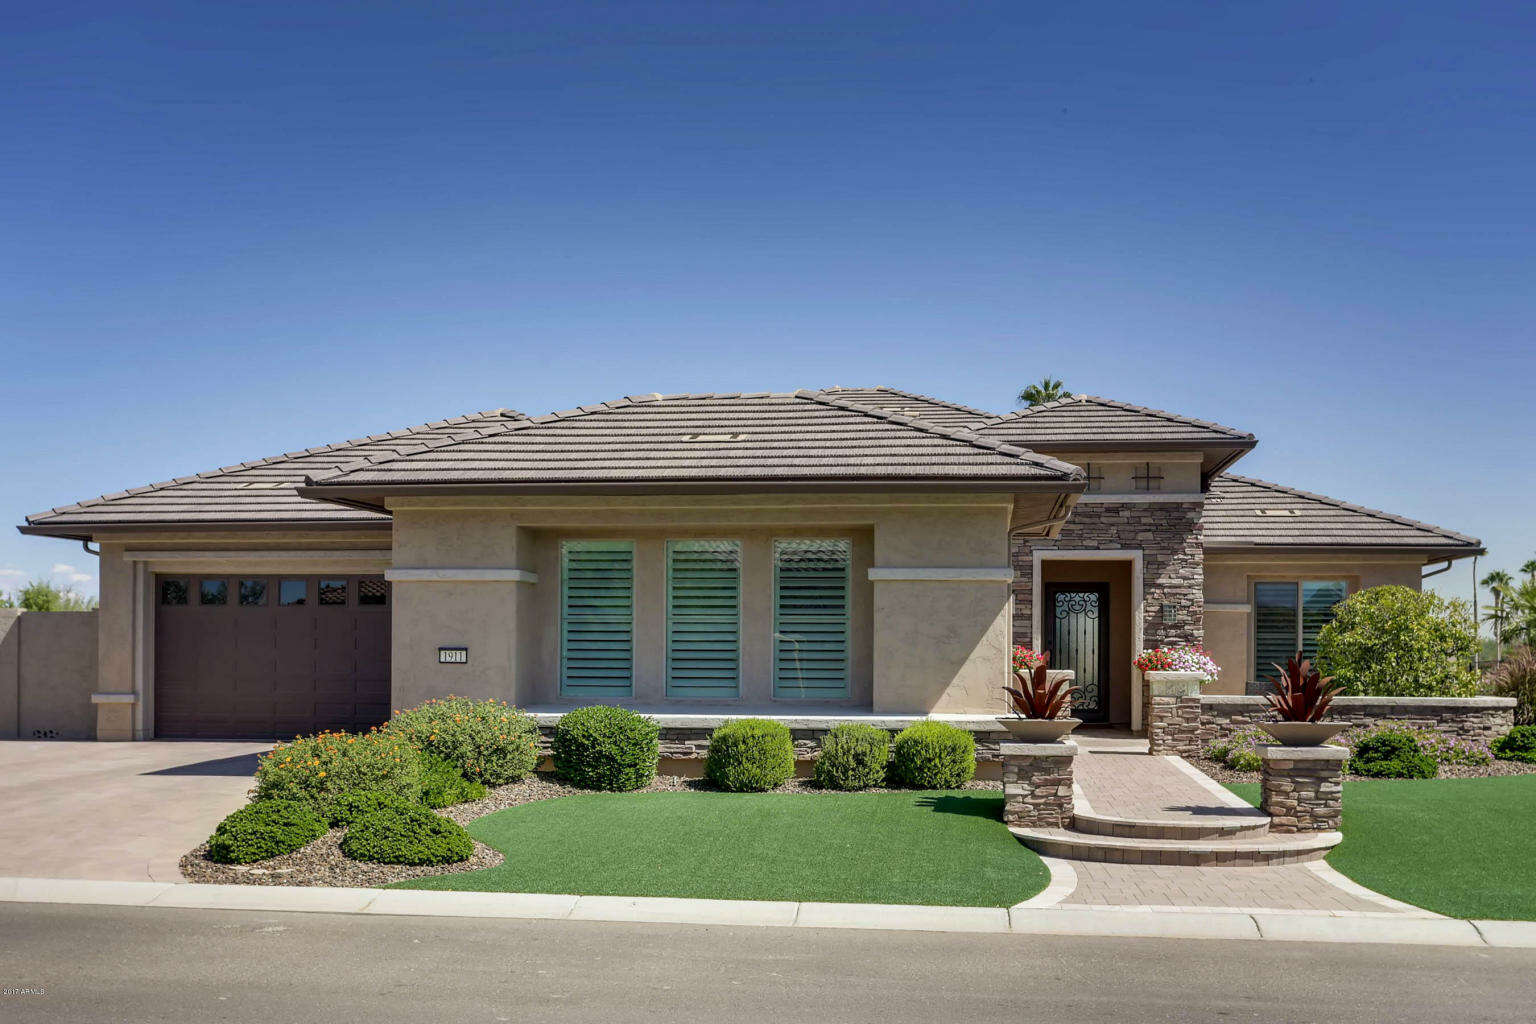 Single Family for Sale at 1911 N 169th Ave Goodyear, Arizona 85395 United States